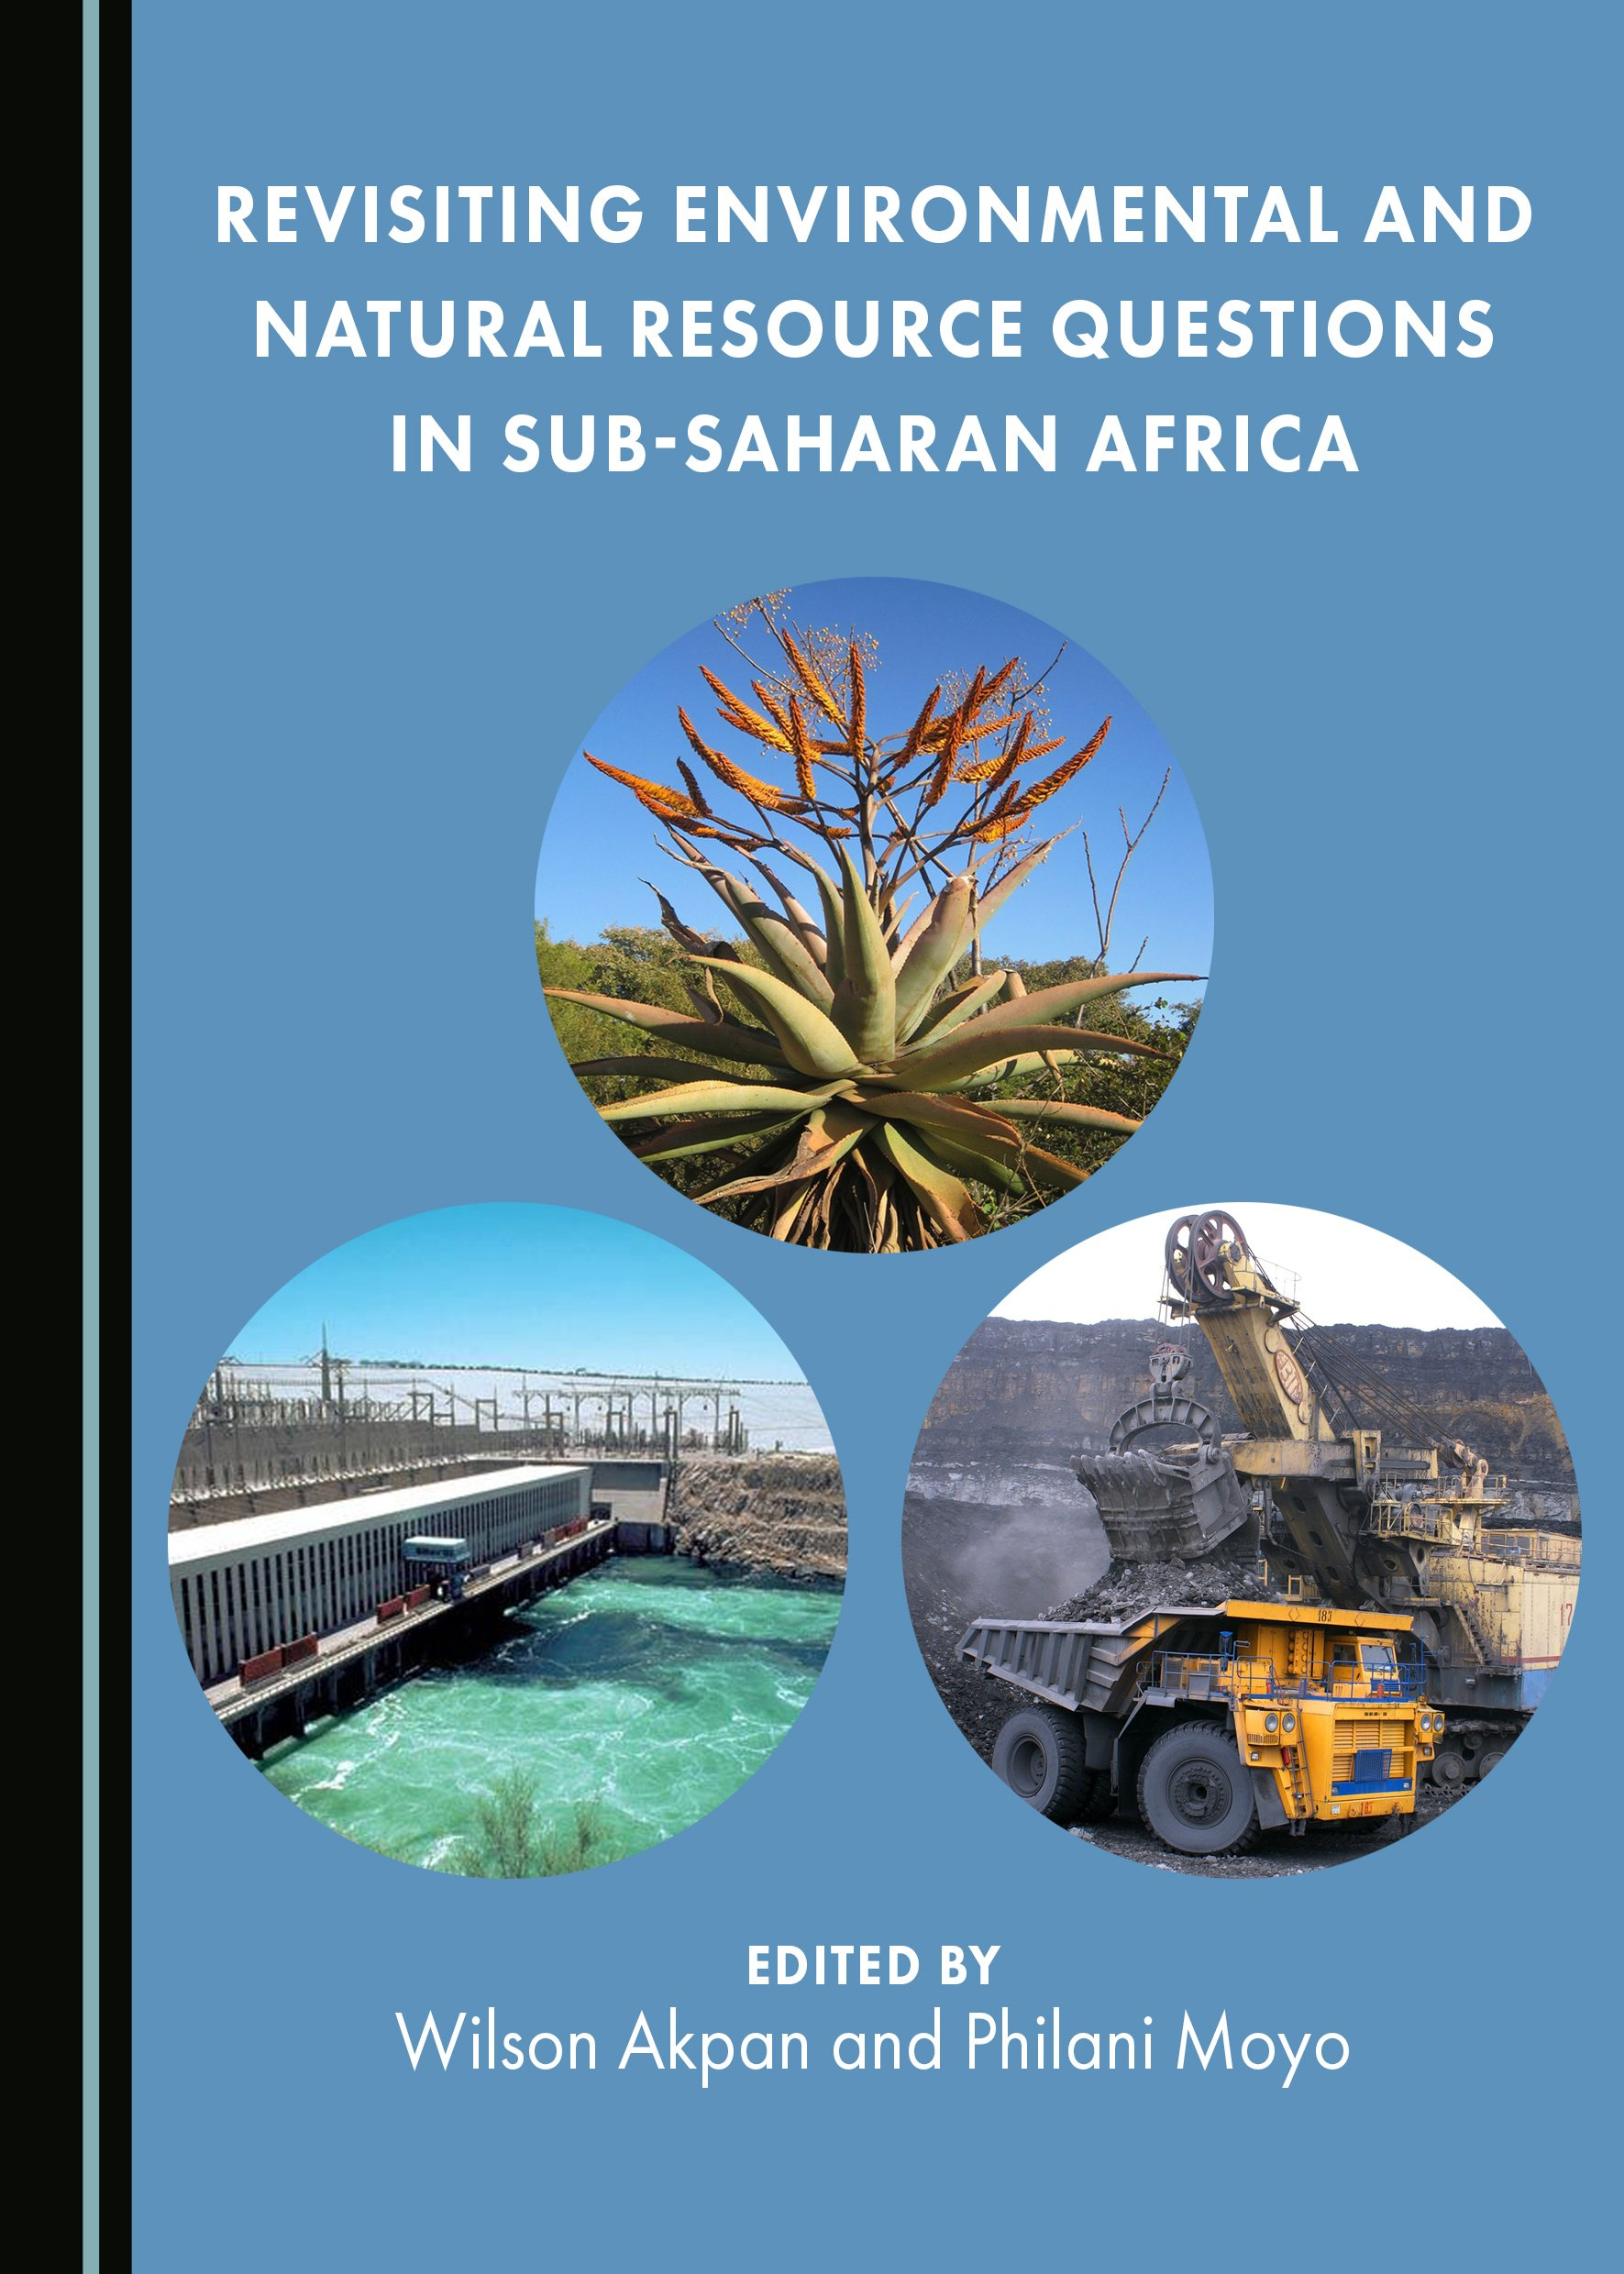 Revisiting Environmental and Natural Resource Questions in Sub-Saharan Africa